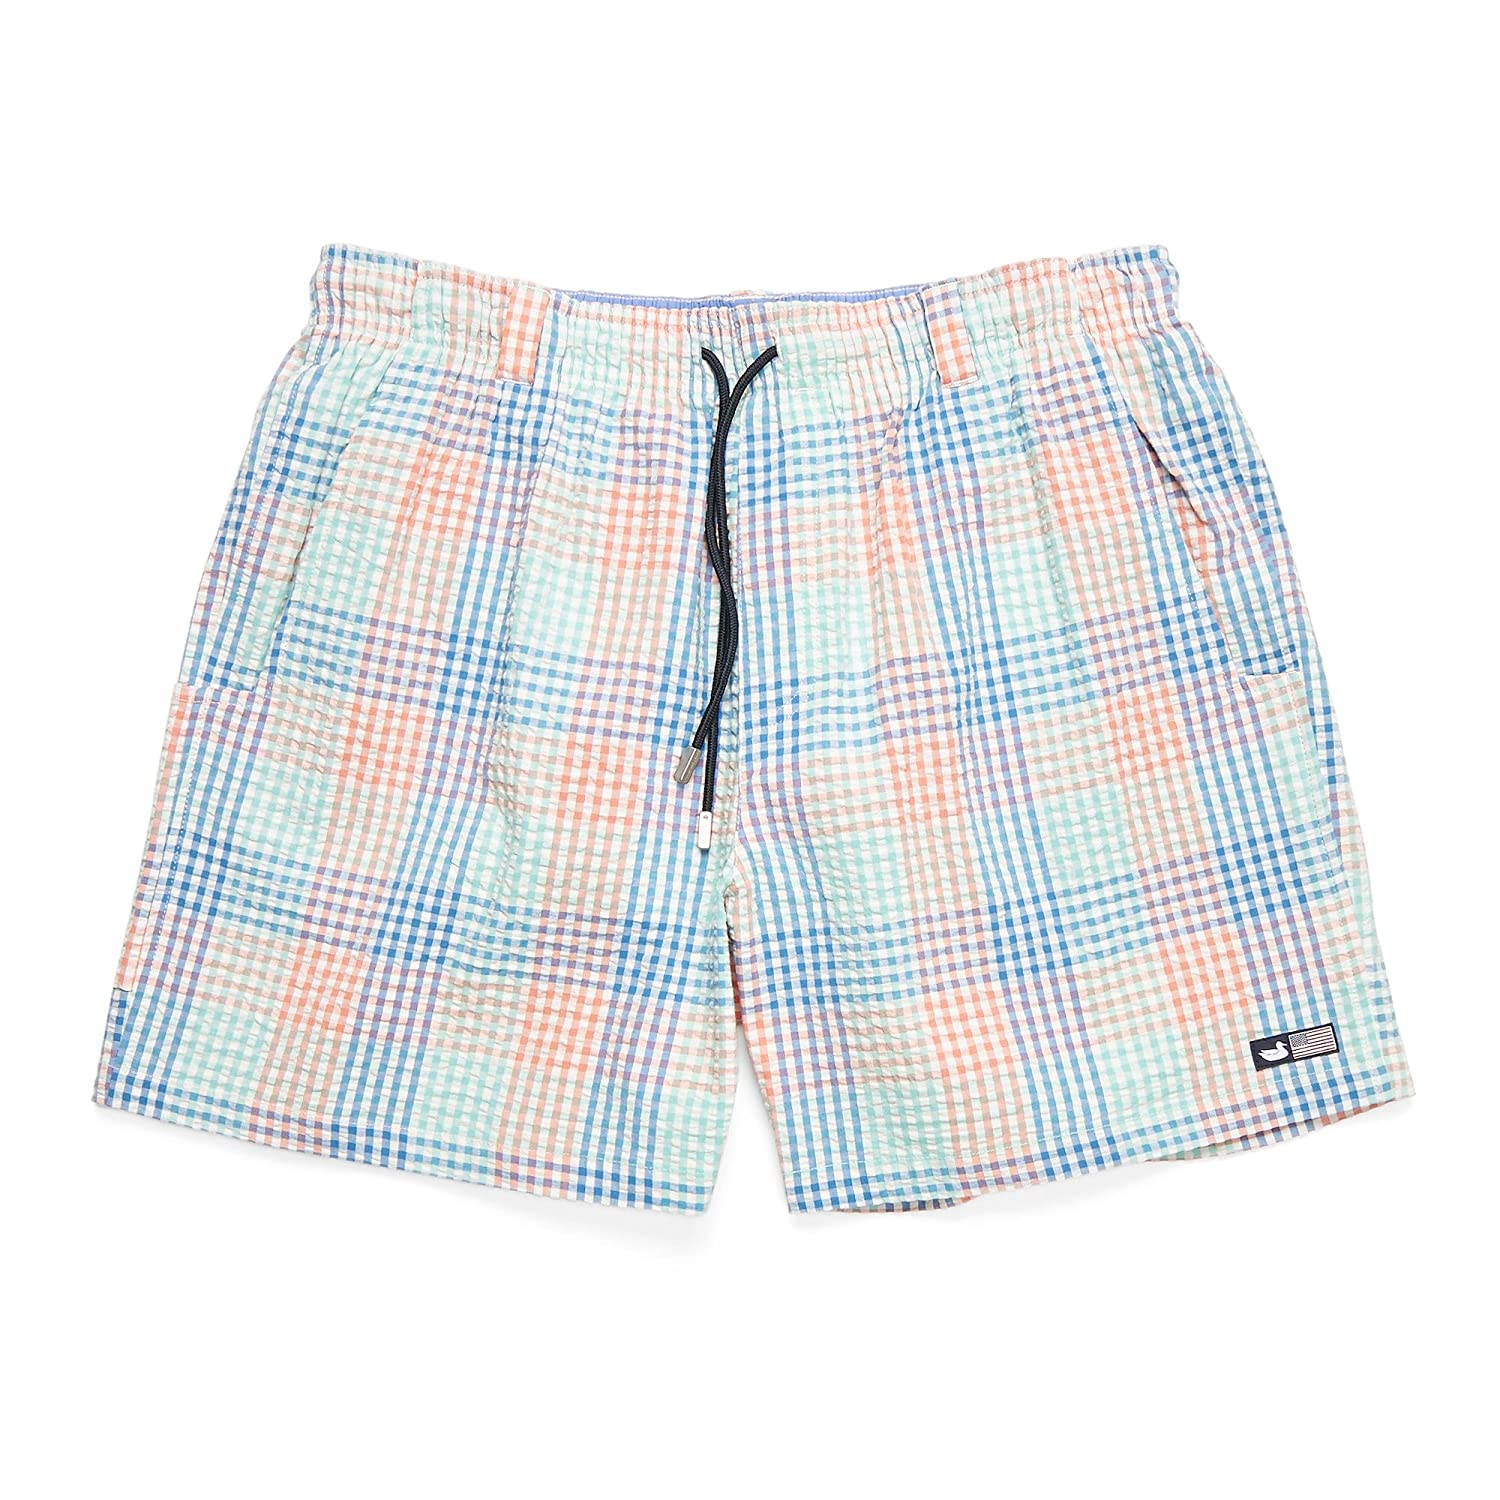 9954204189 Southern Marsh Dockside Swim Trunk - Seersucker Gingham | Amazon.com